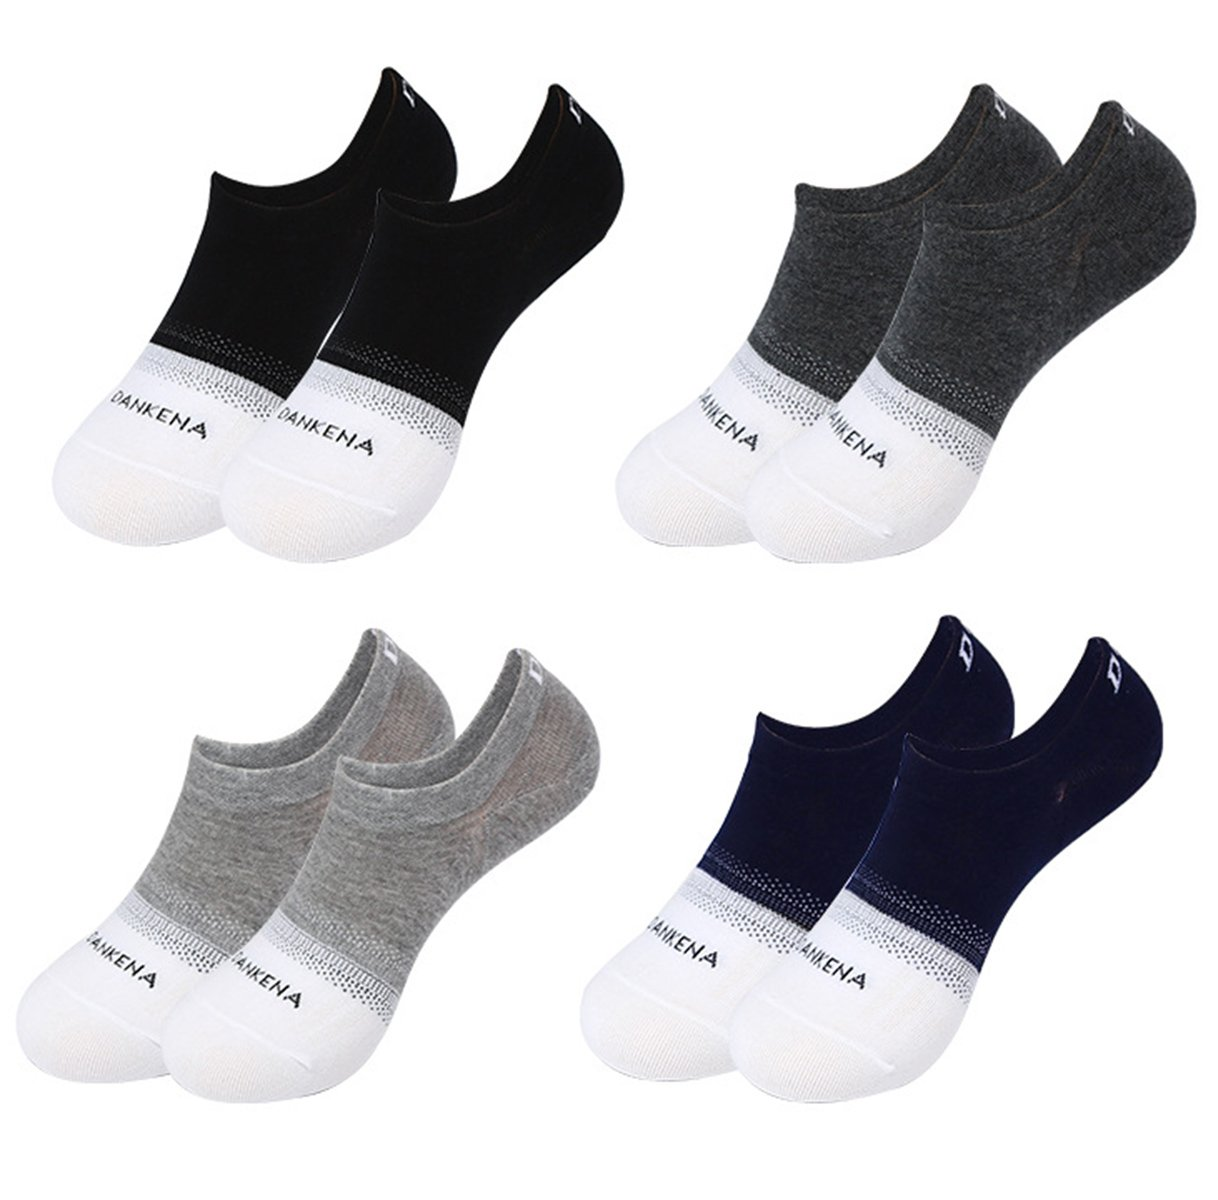 Spikerking Mens Cotton Low Cut No Show Casual Non-Slide Thin Socks 4 Pack,4 Pack-4 Color